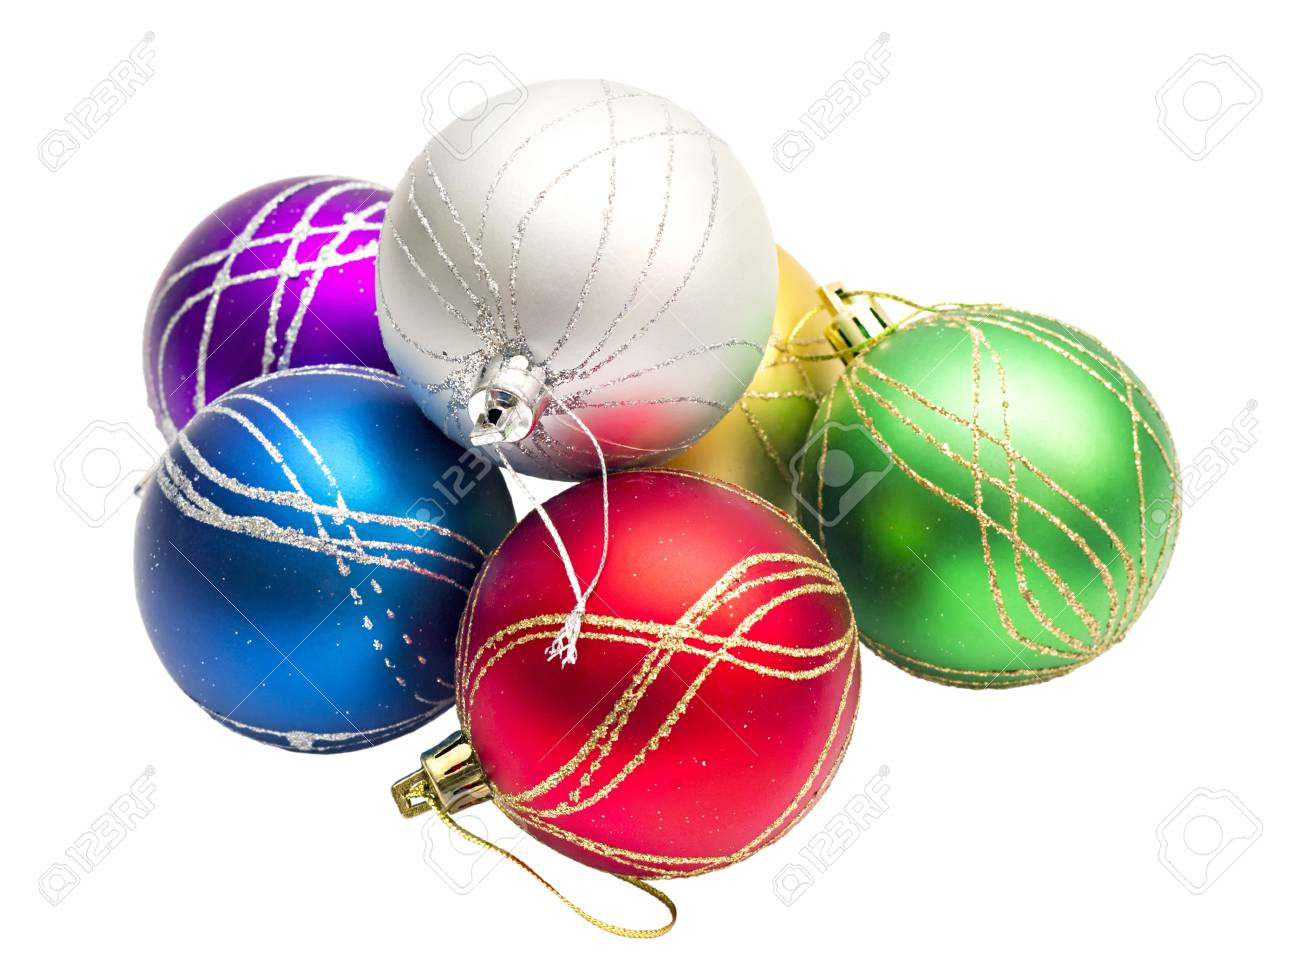 multi-colored Christmas balls isolated on white background Stock Photo - 11450231